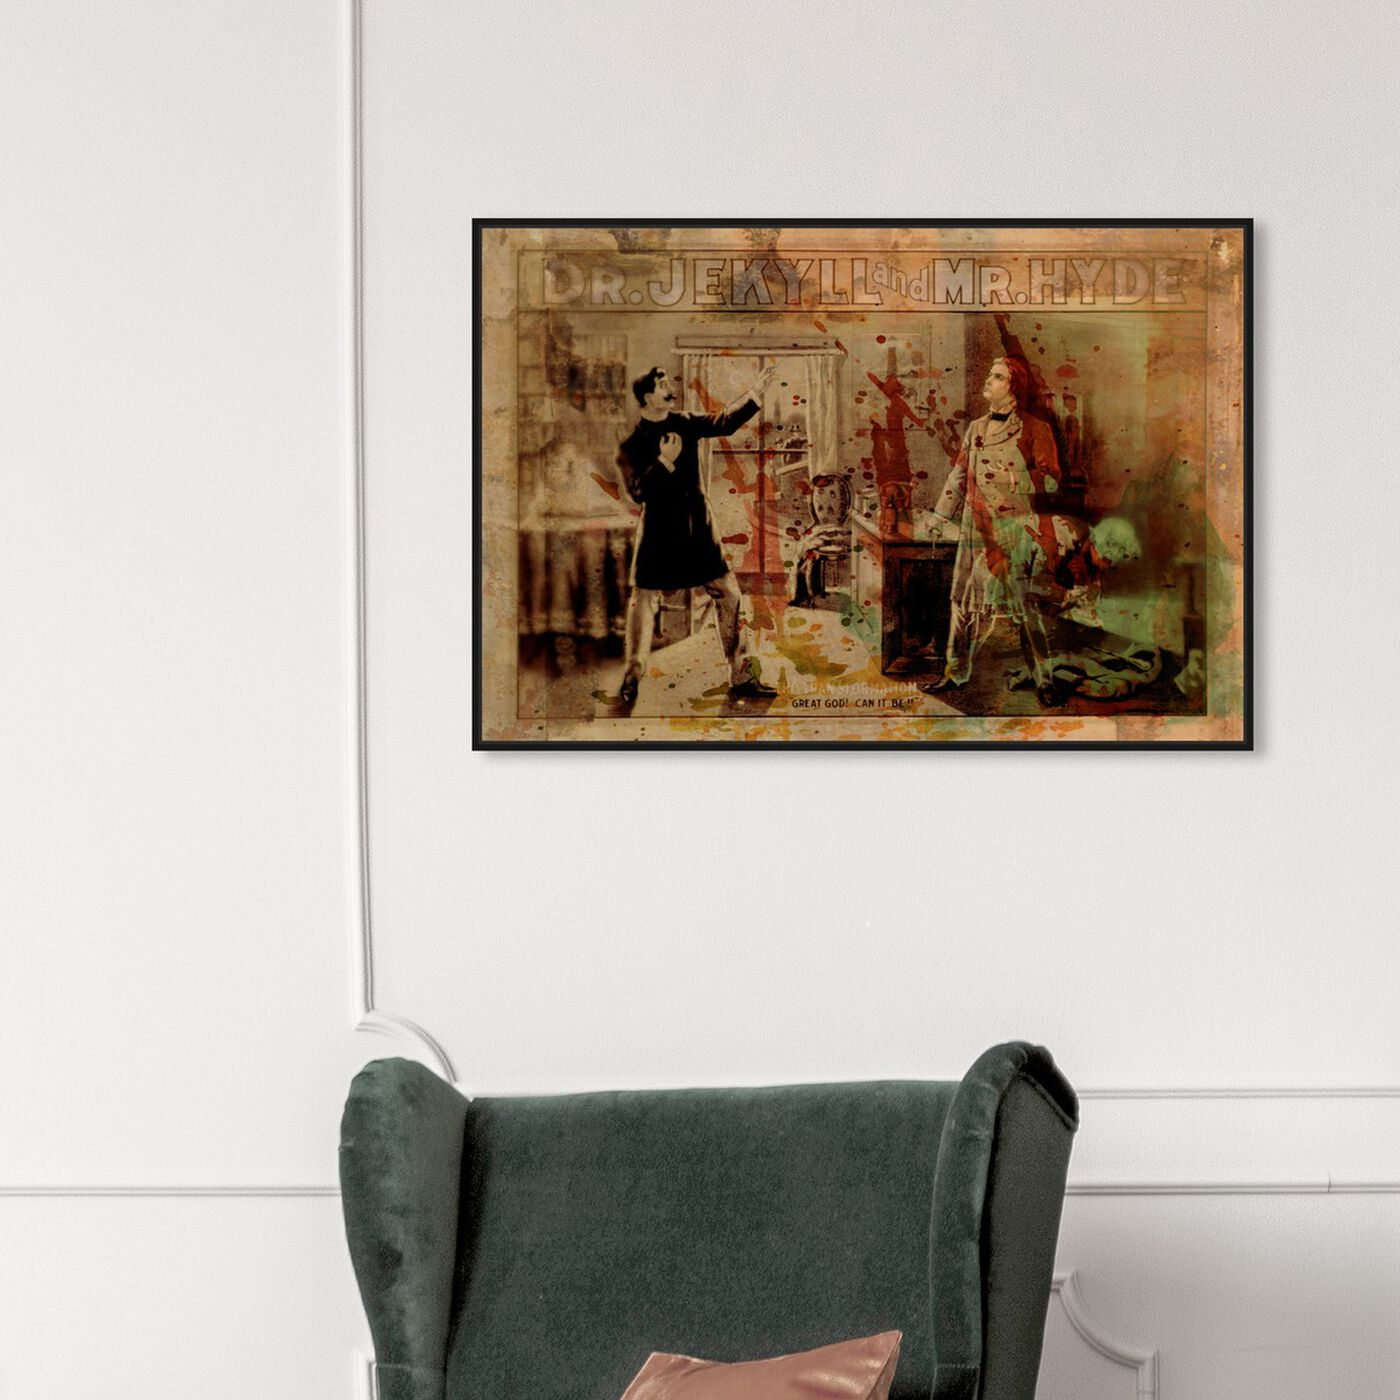 Hanging view of Jekyll vs. Hyde featuring advertising and posters art.